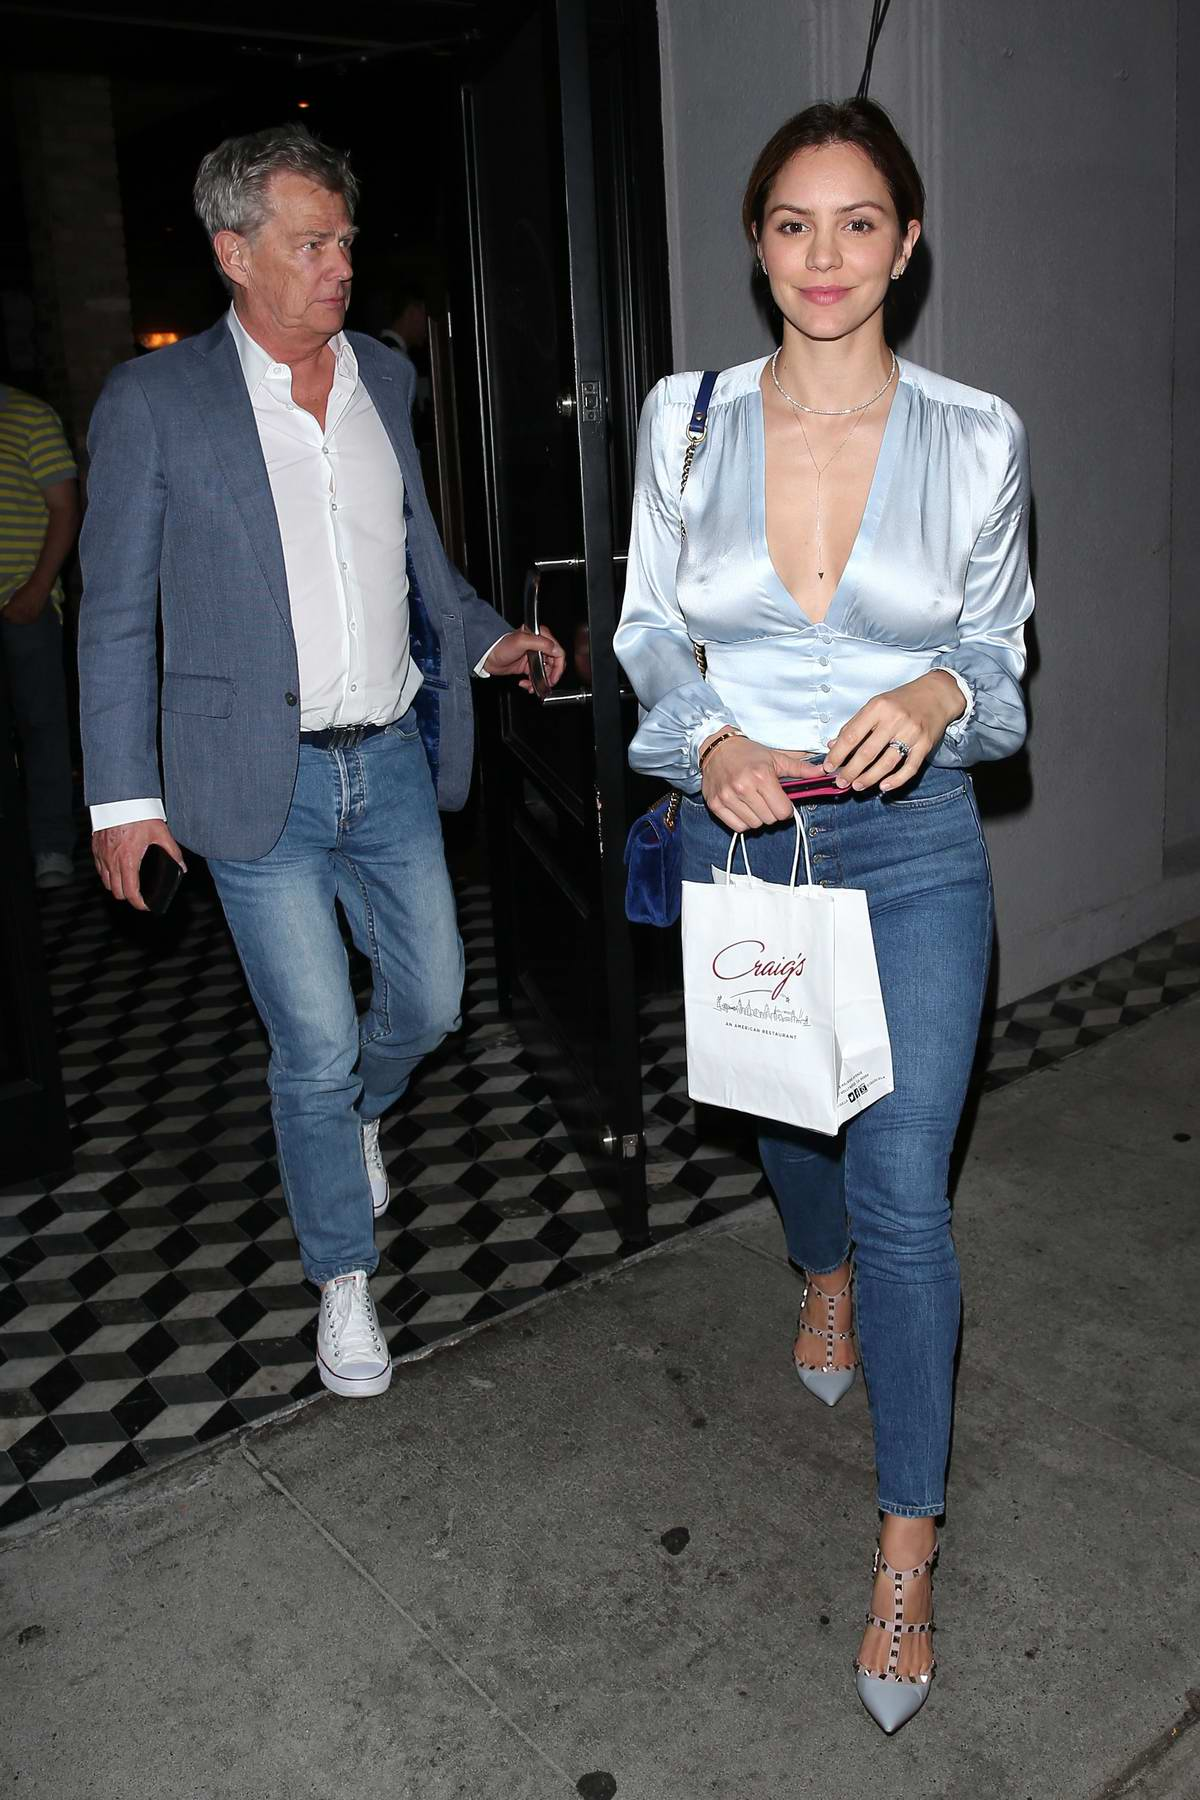 Katharine McPhee and David Foster enjoy a date night at Craig's in West Hollywood, Los Angeles